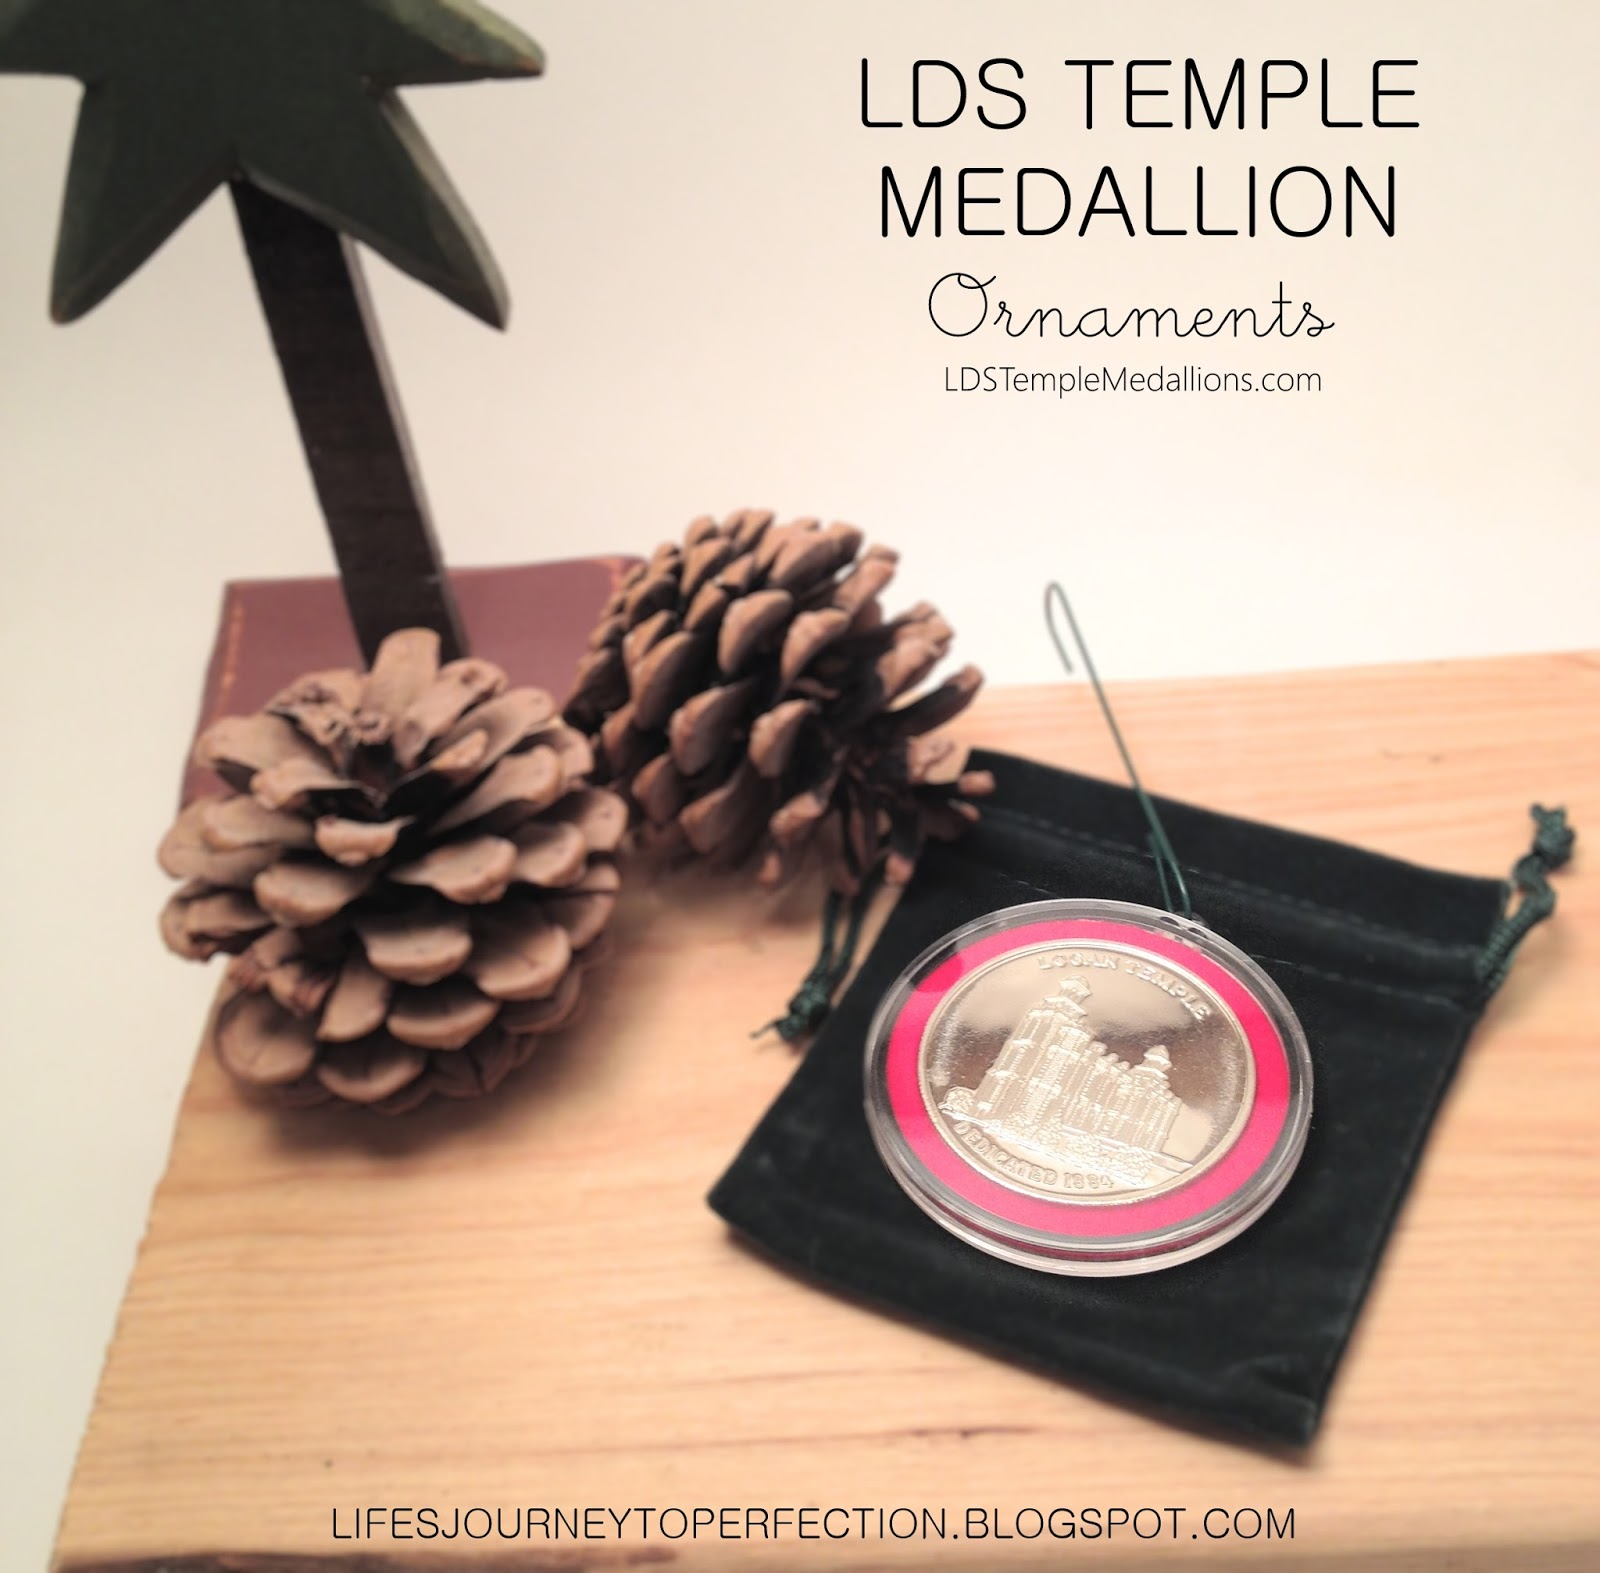 Lds temple ornaments - One Of My Favorite Christmas Traditions Is Each Year Since I Was A Baby I Received A Christmas Tree Ornament Each Ornament I Have Received Is Different And